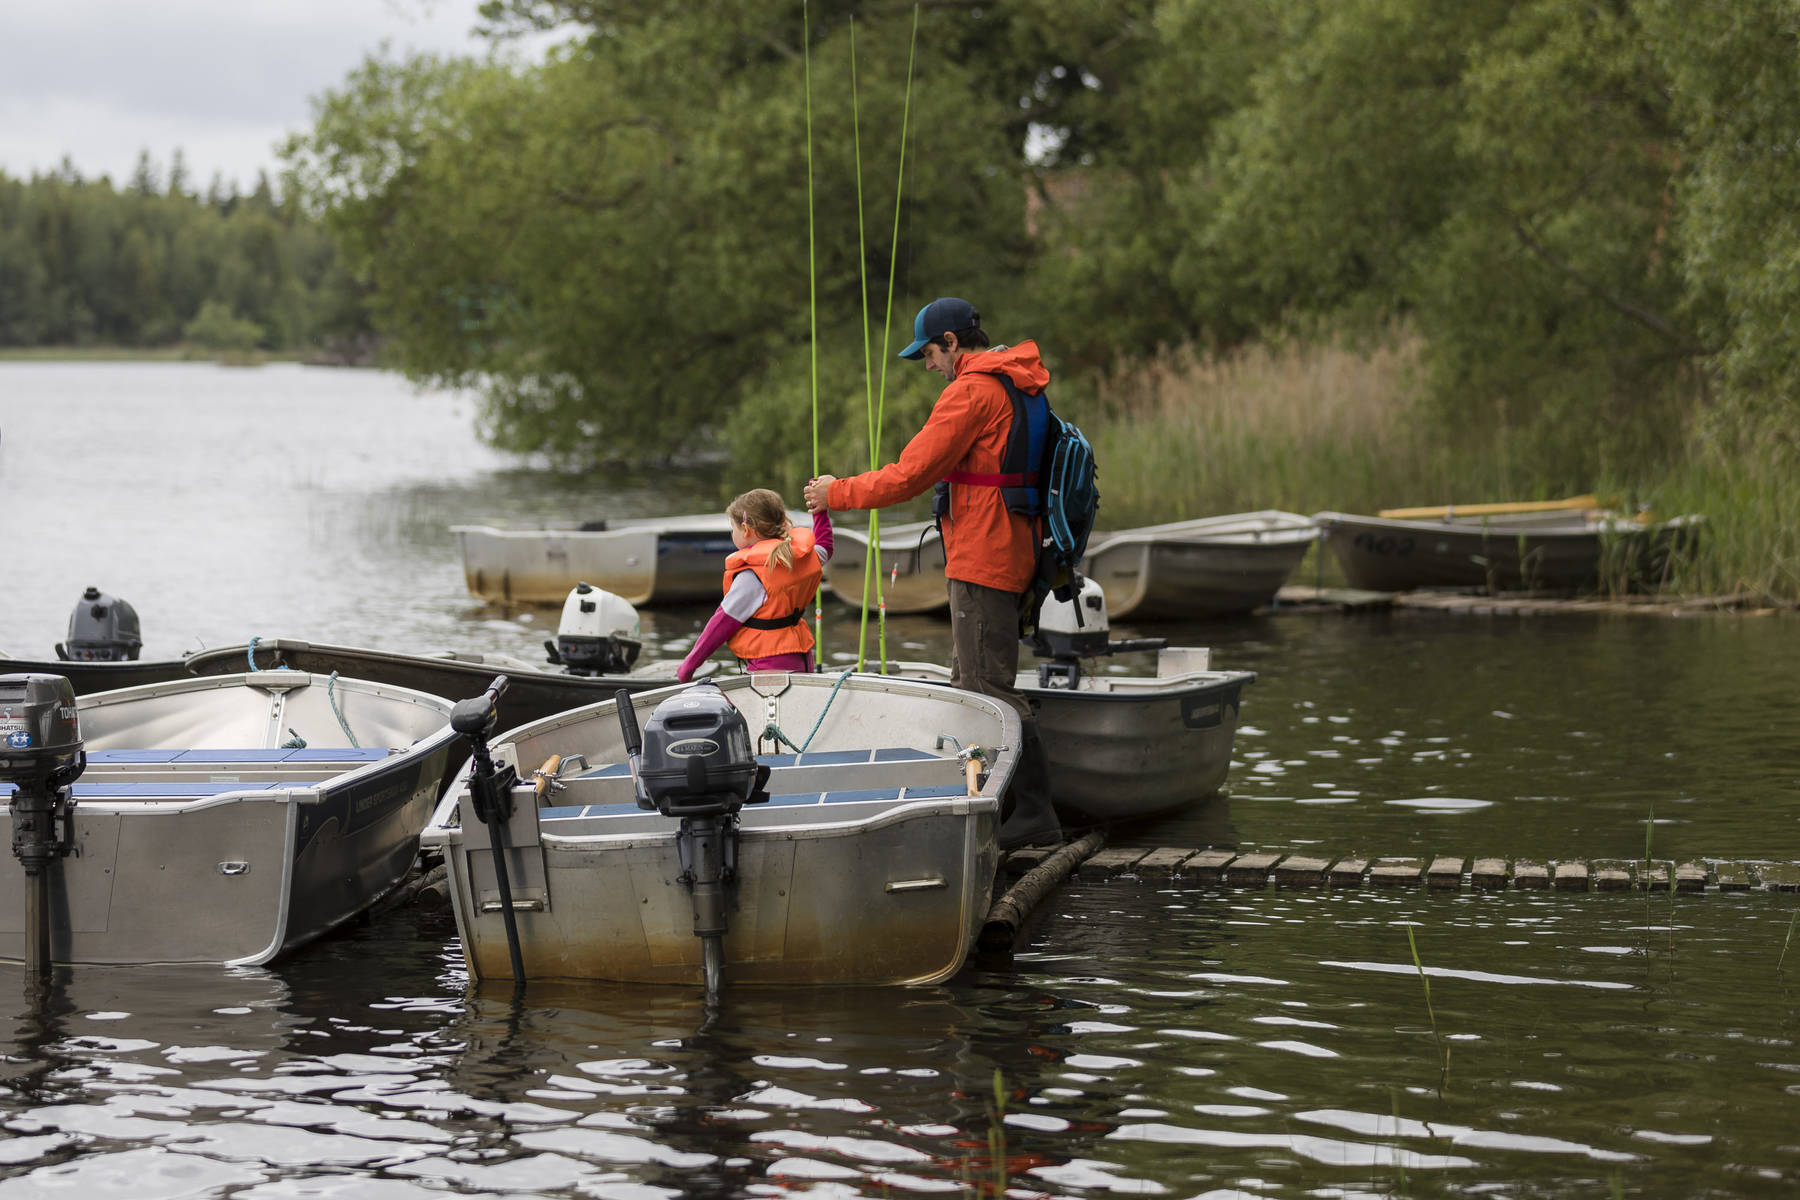 Fishing together with children